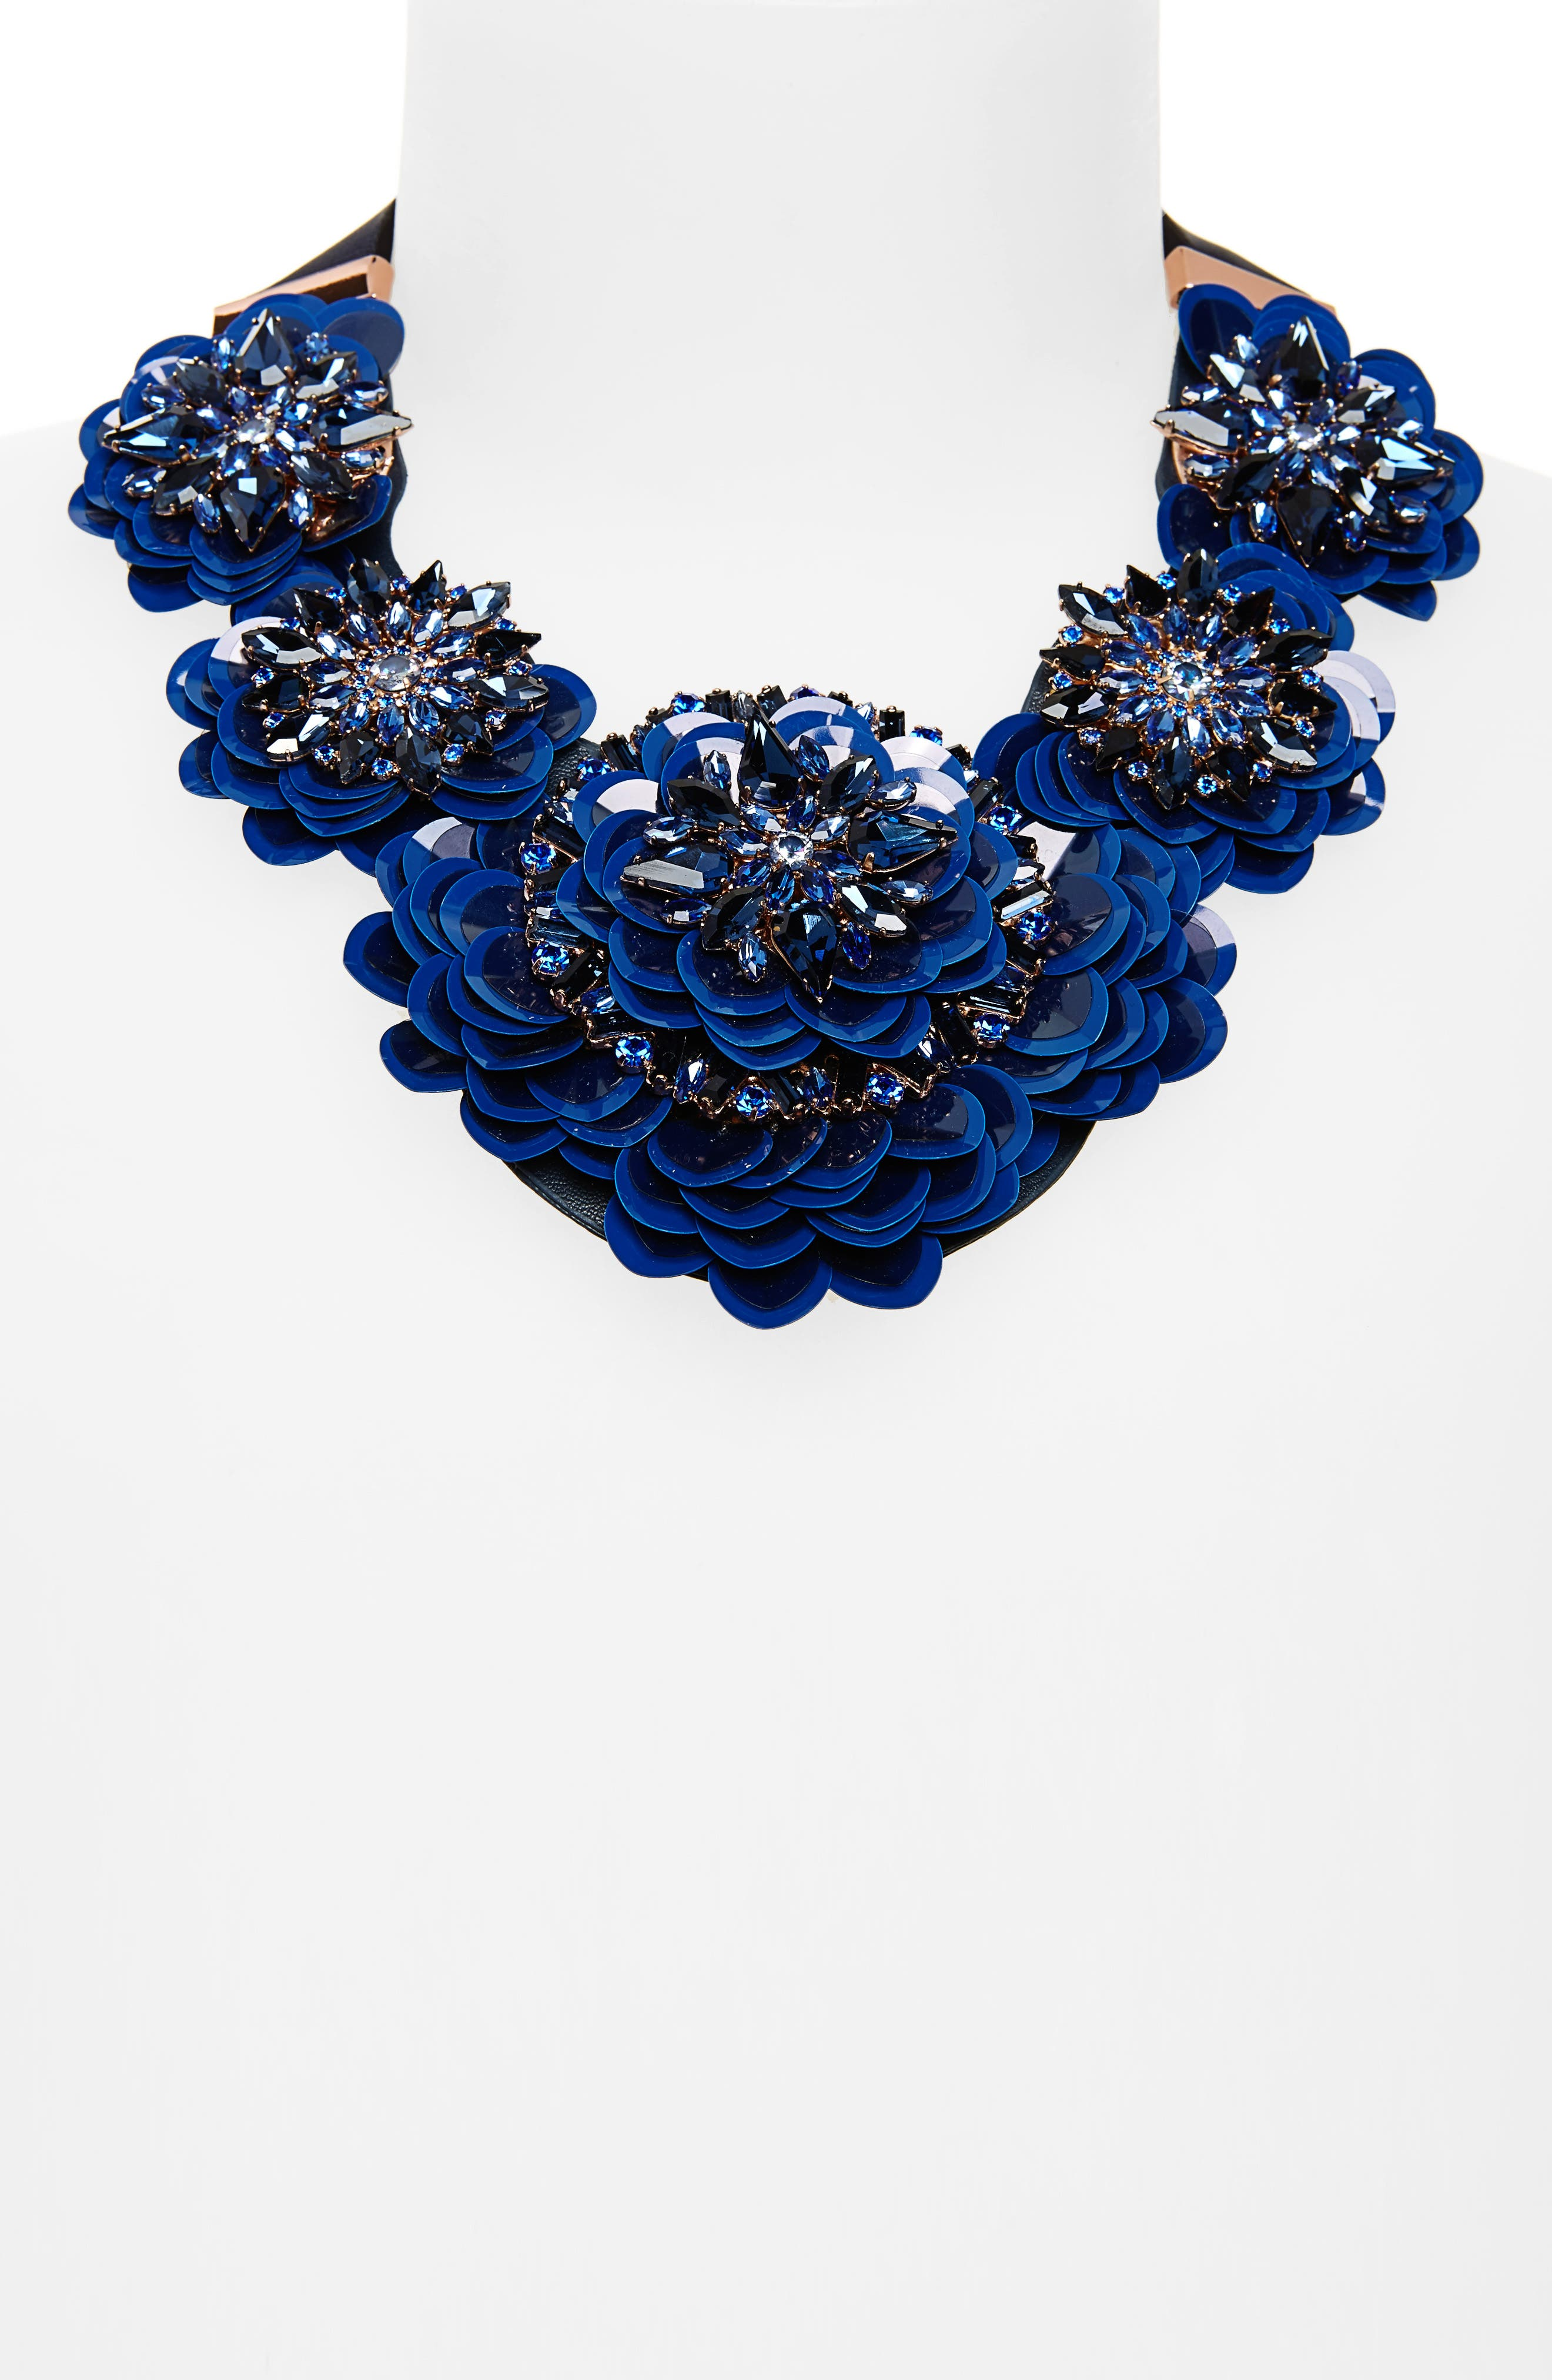 KATE SPADE NEW YORK,                             snowy nights sequin statement necklace,                             Alternate thumbnail 2, color,                             400